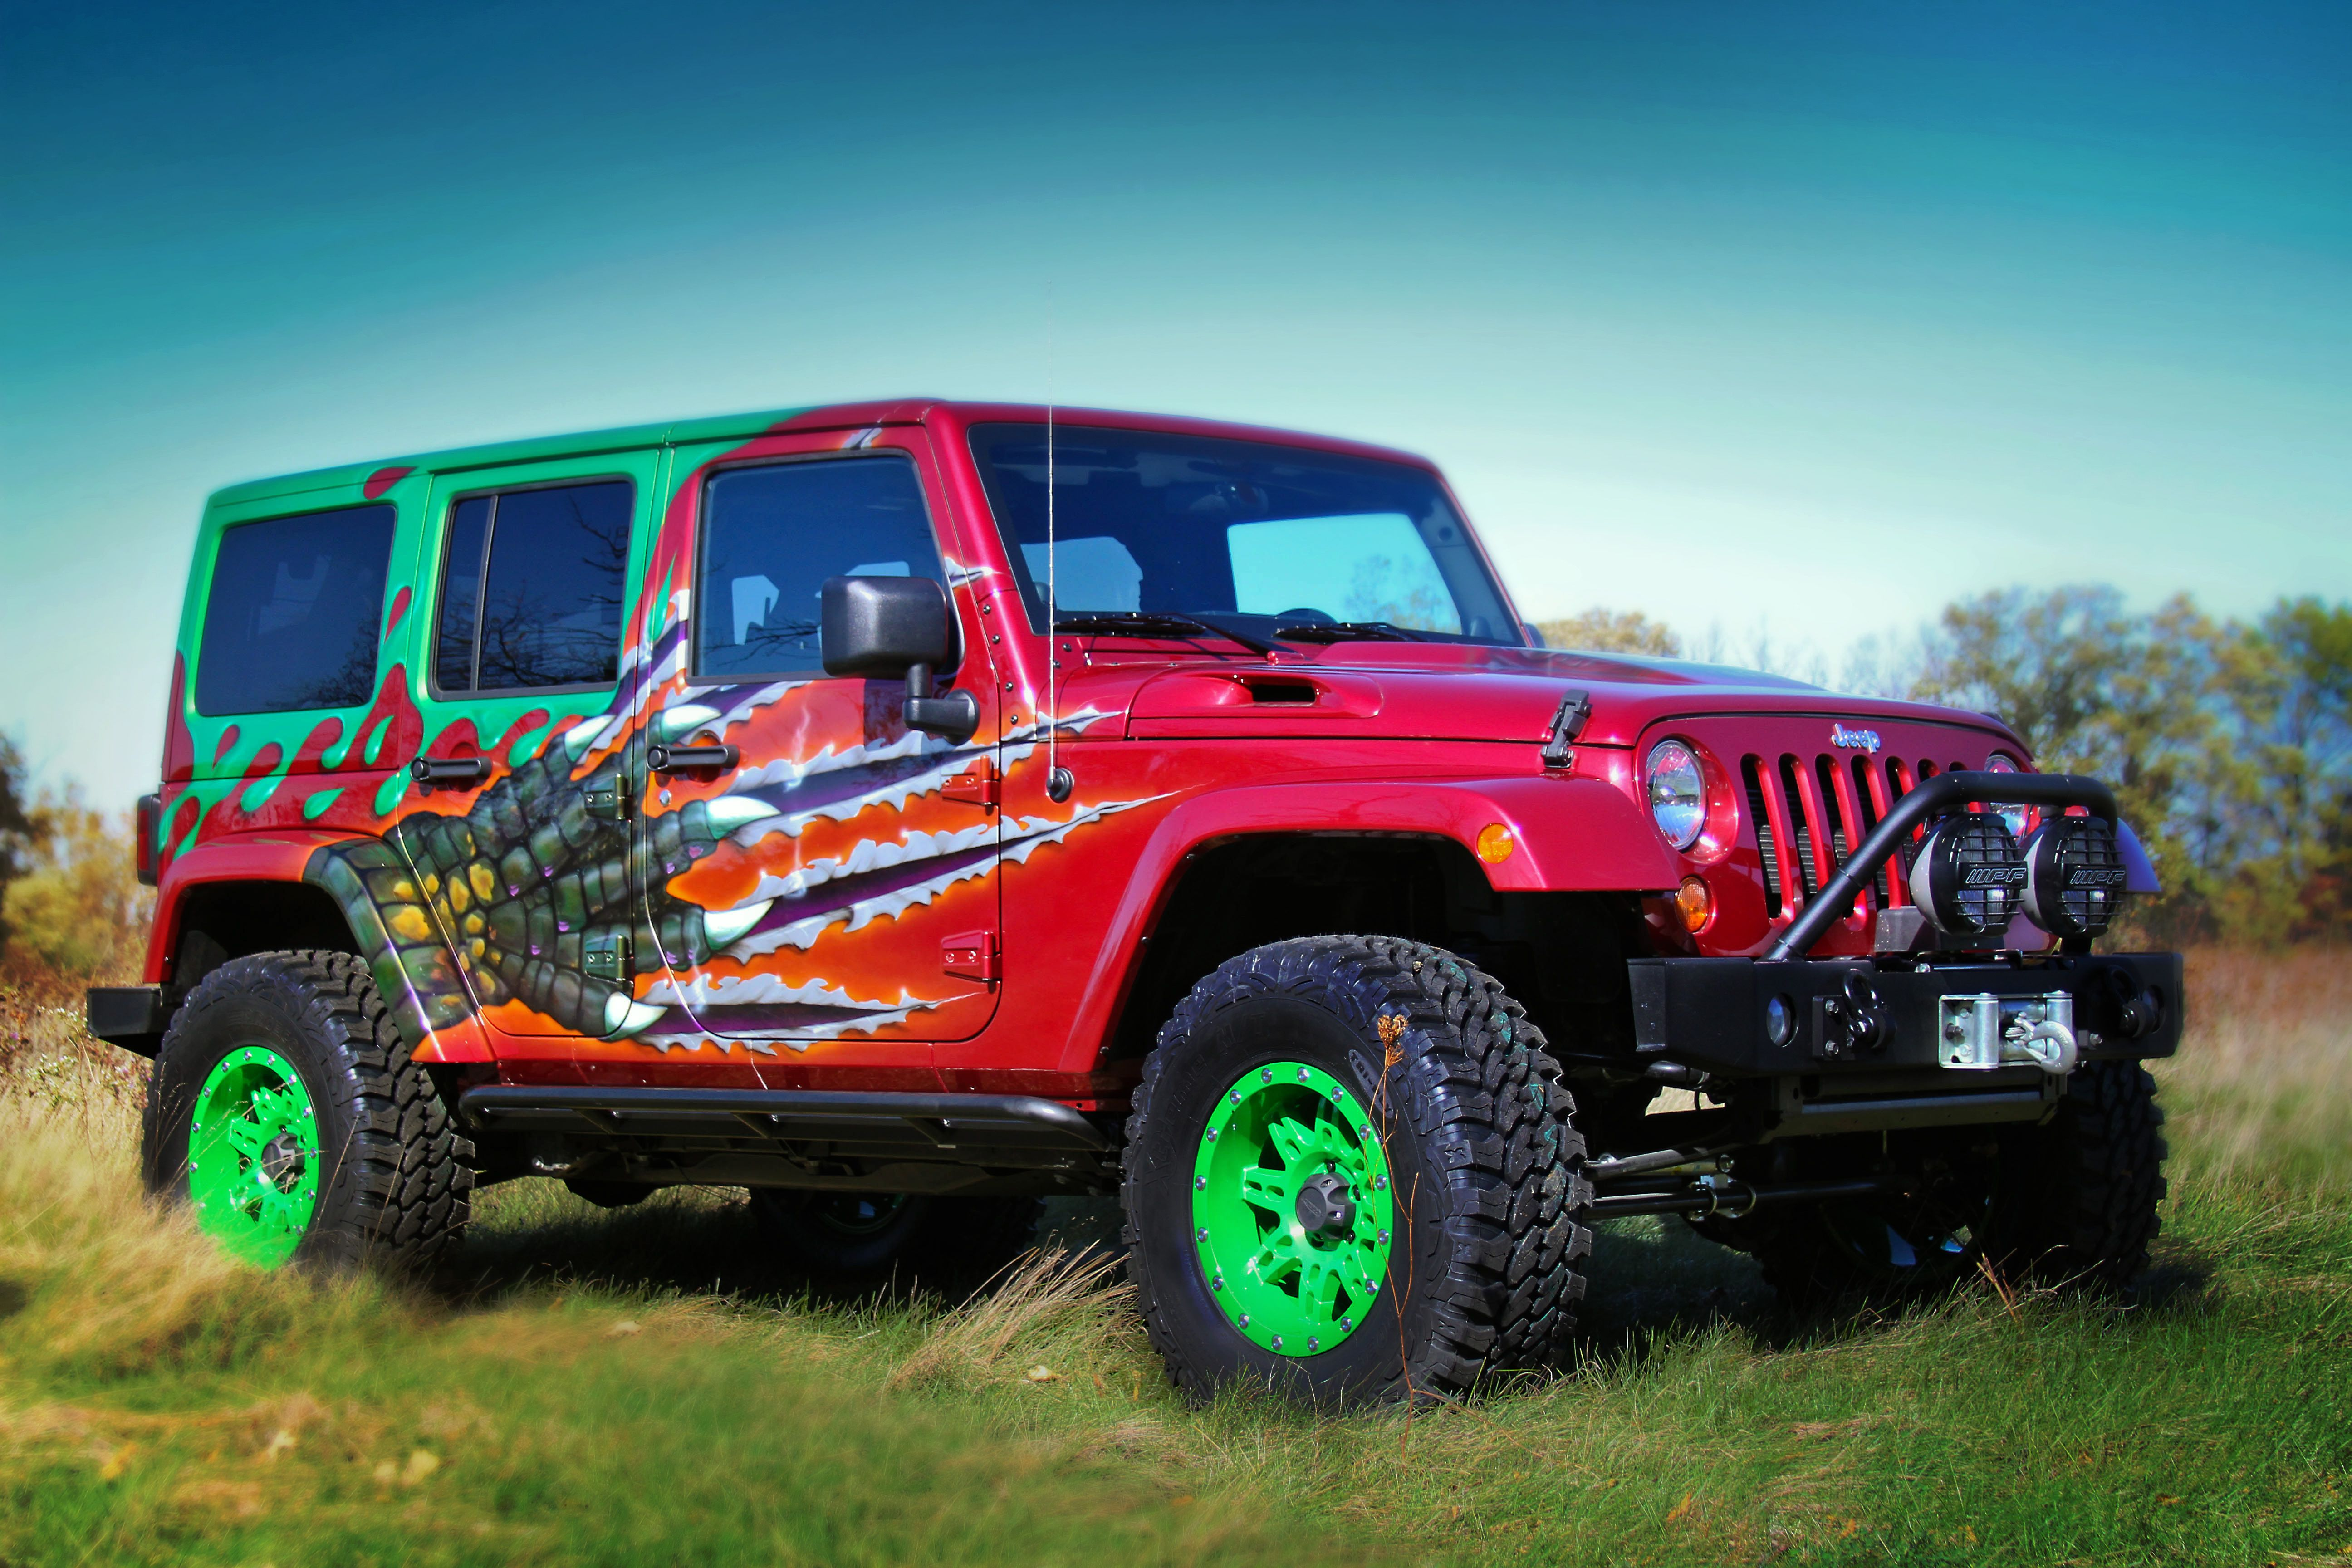 Cool Jeep Paint Jobs Wallpaper Design Gallery Jeep Game On Point